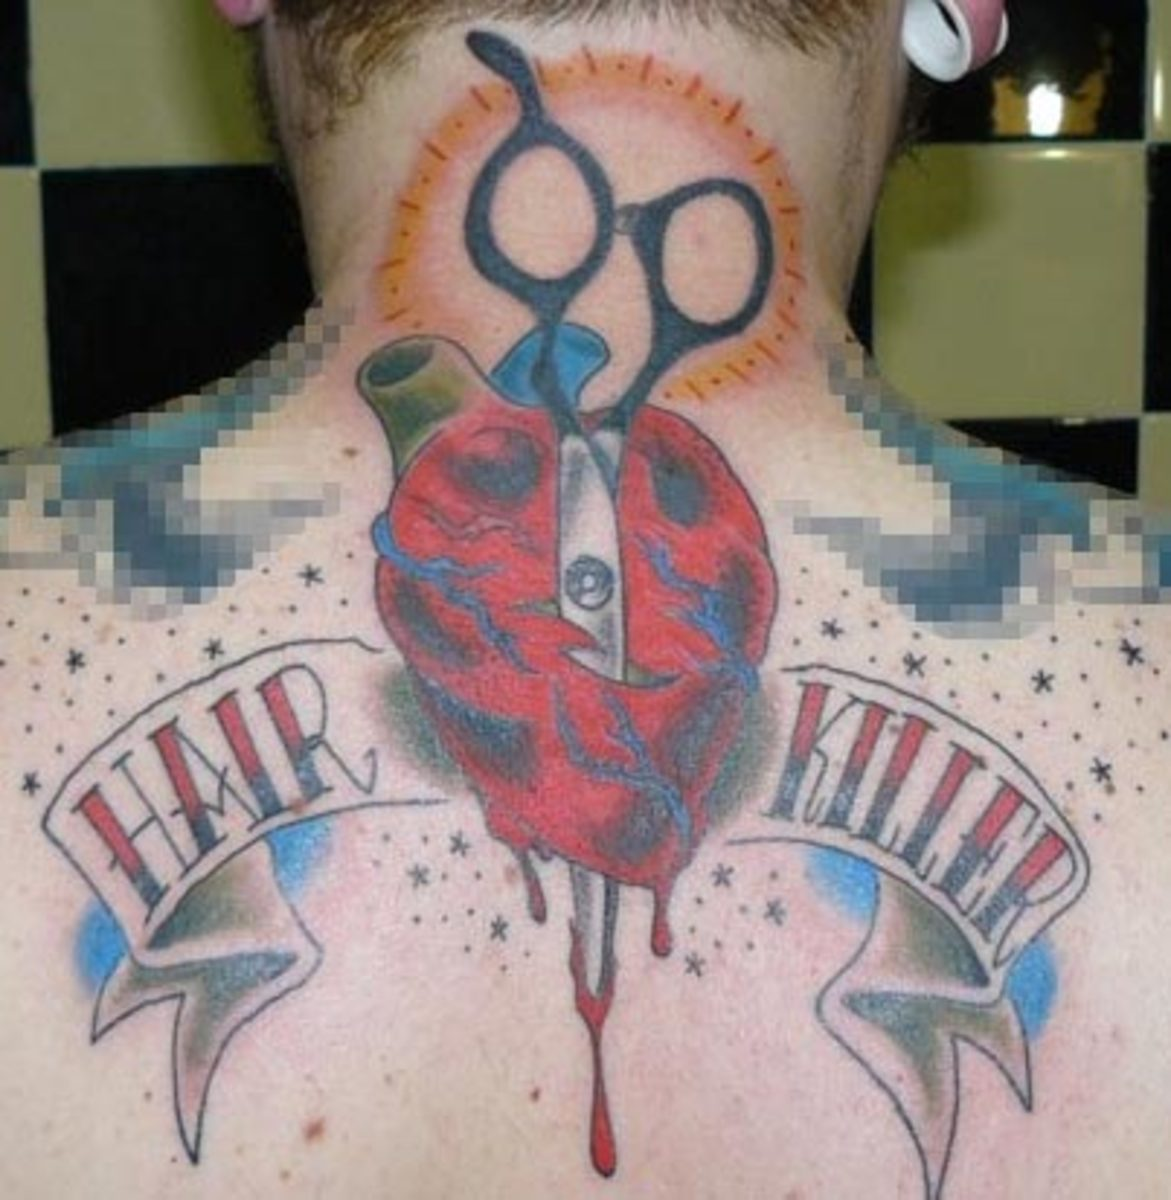 bleeding heart tattoo. Pictures of Heart Tattoos